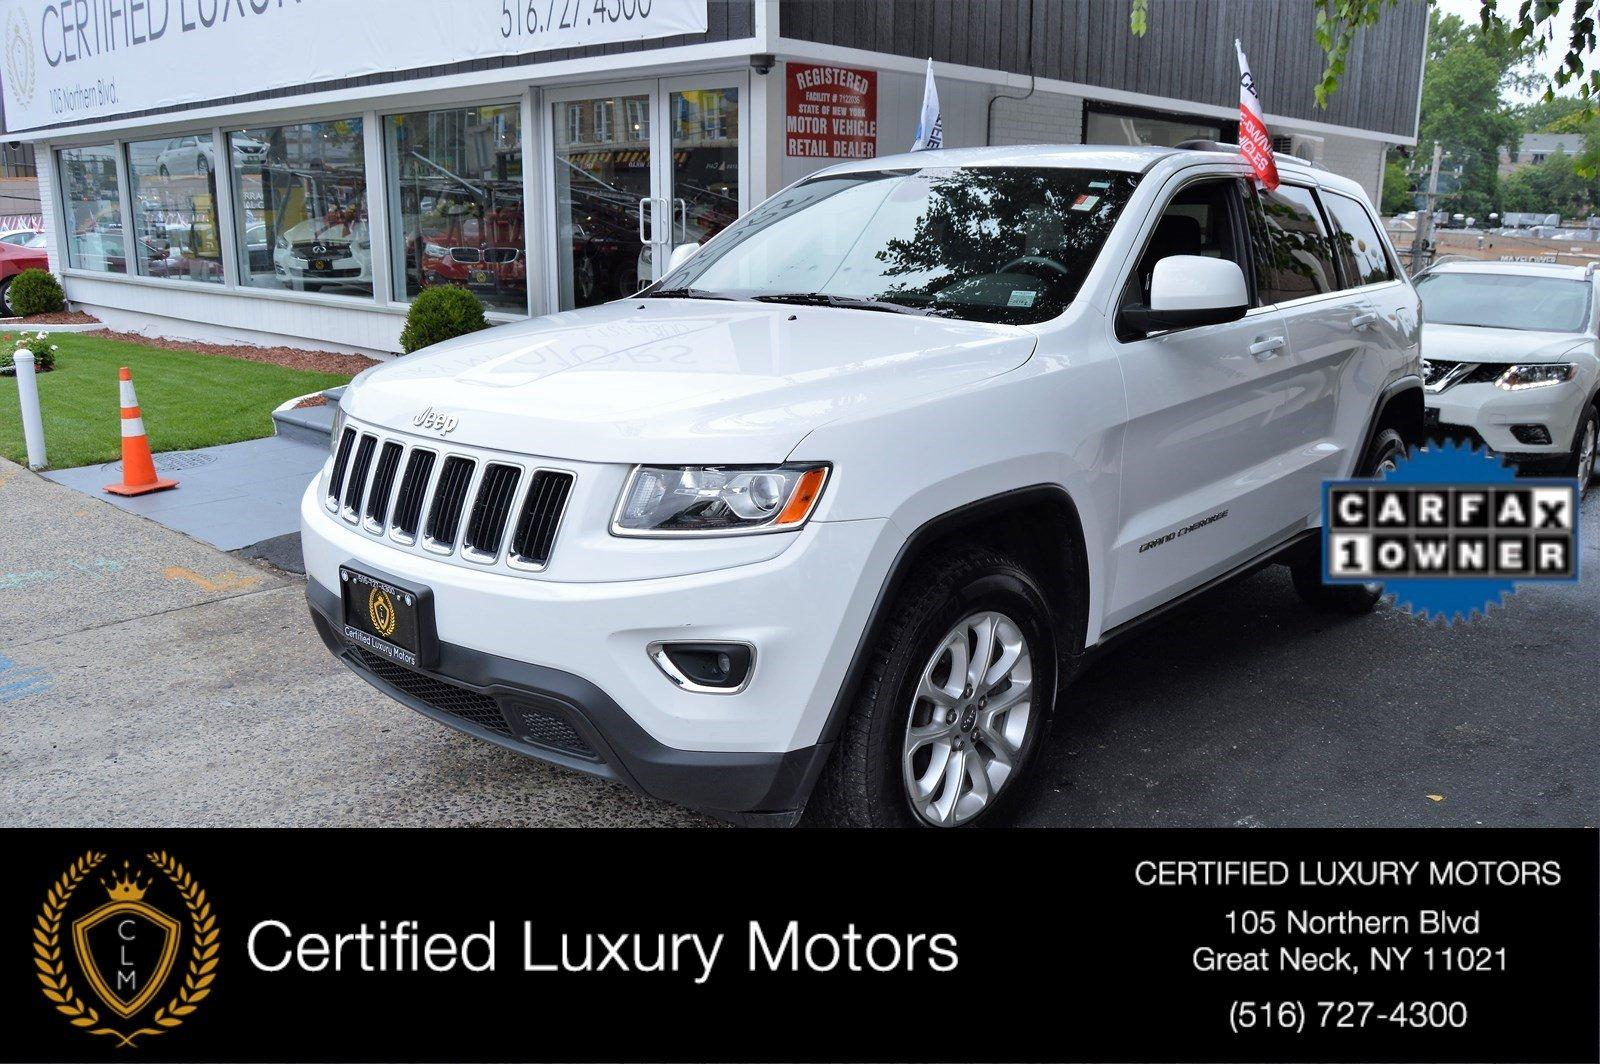 grand world jacksonville serving fl beach jeep used diesel cherokee vin marco sale san usa bl ponte vedra certified palm imports for overland in htm valley florida